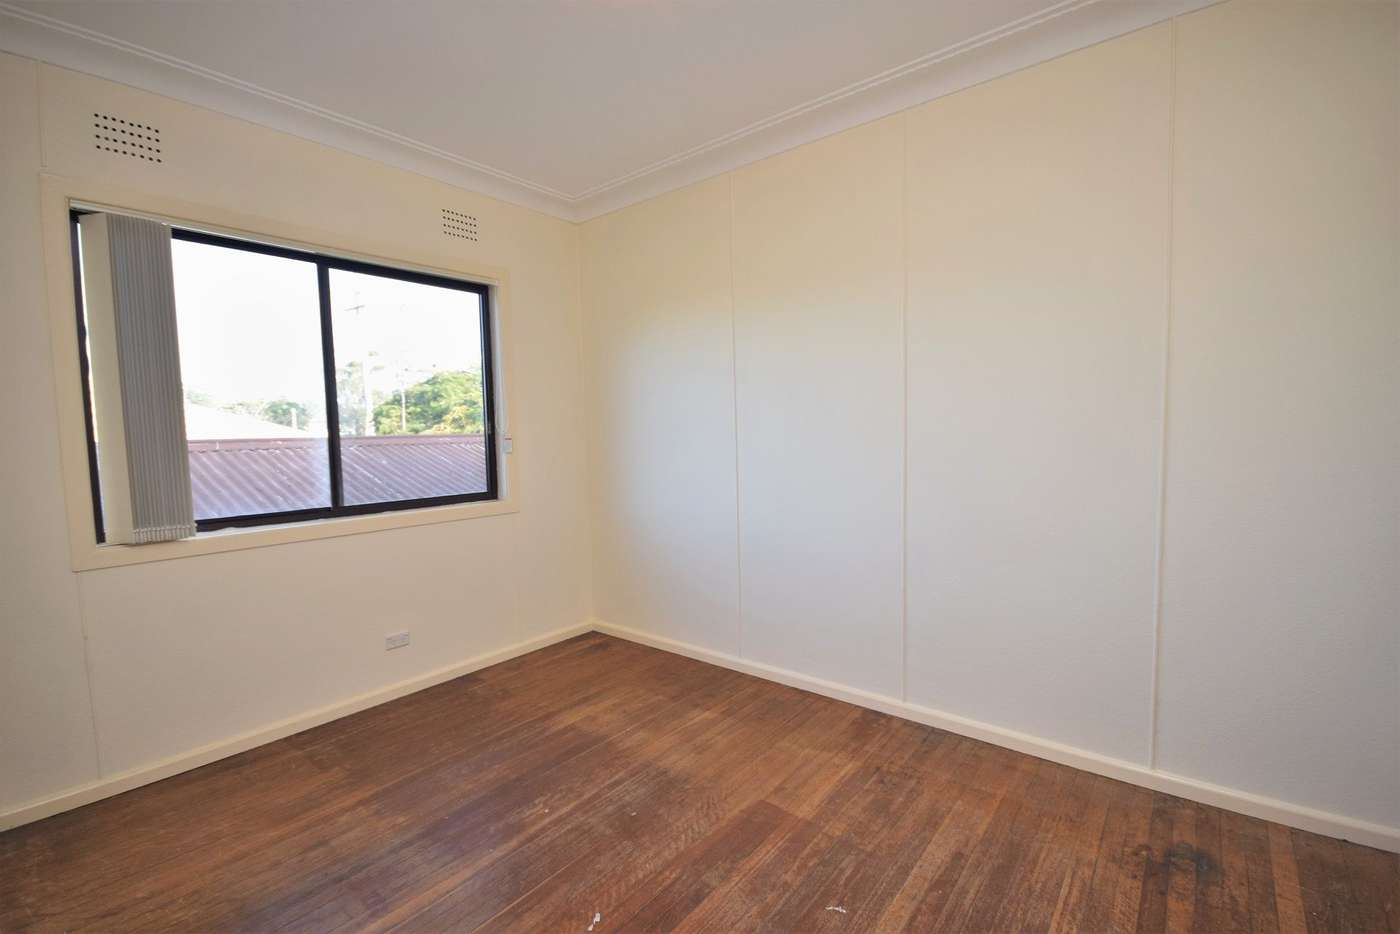 Seventh view of Homely house listing, 33 Lee Street, Nambucca Heads NSW 2448